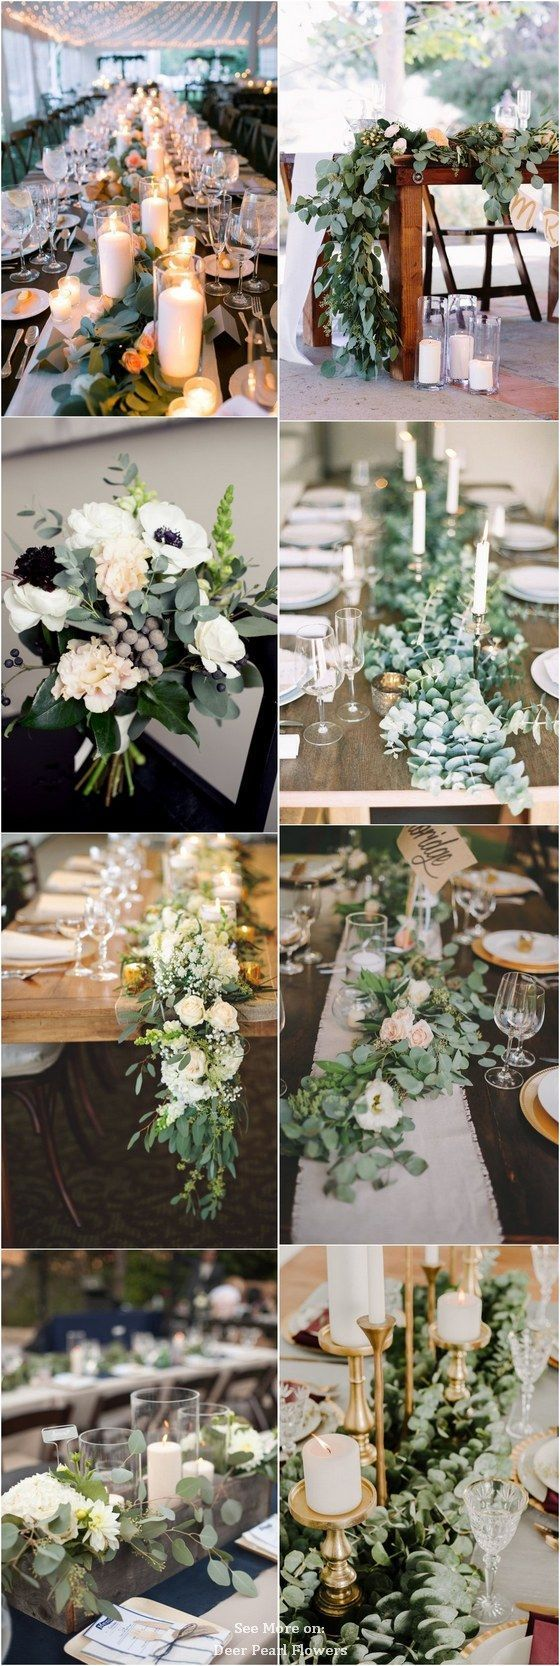 Wedding decoration ideas at home  Eucalyptus green wedding color ideas  erpearlflowers